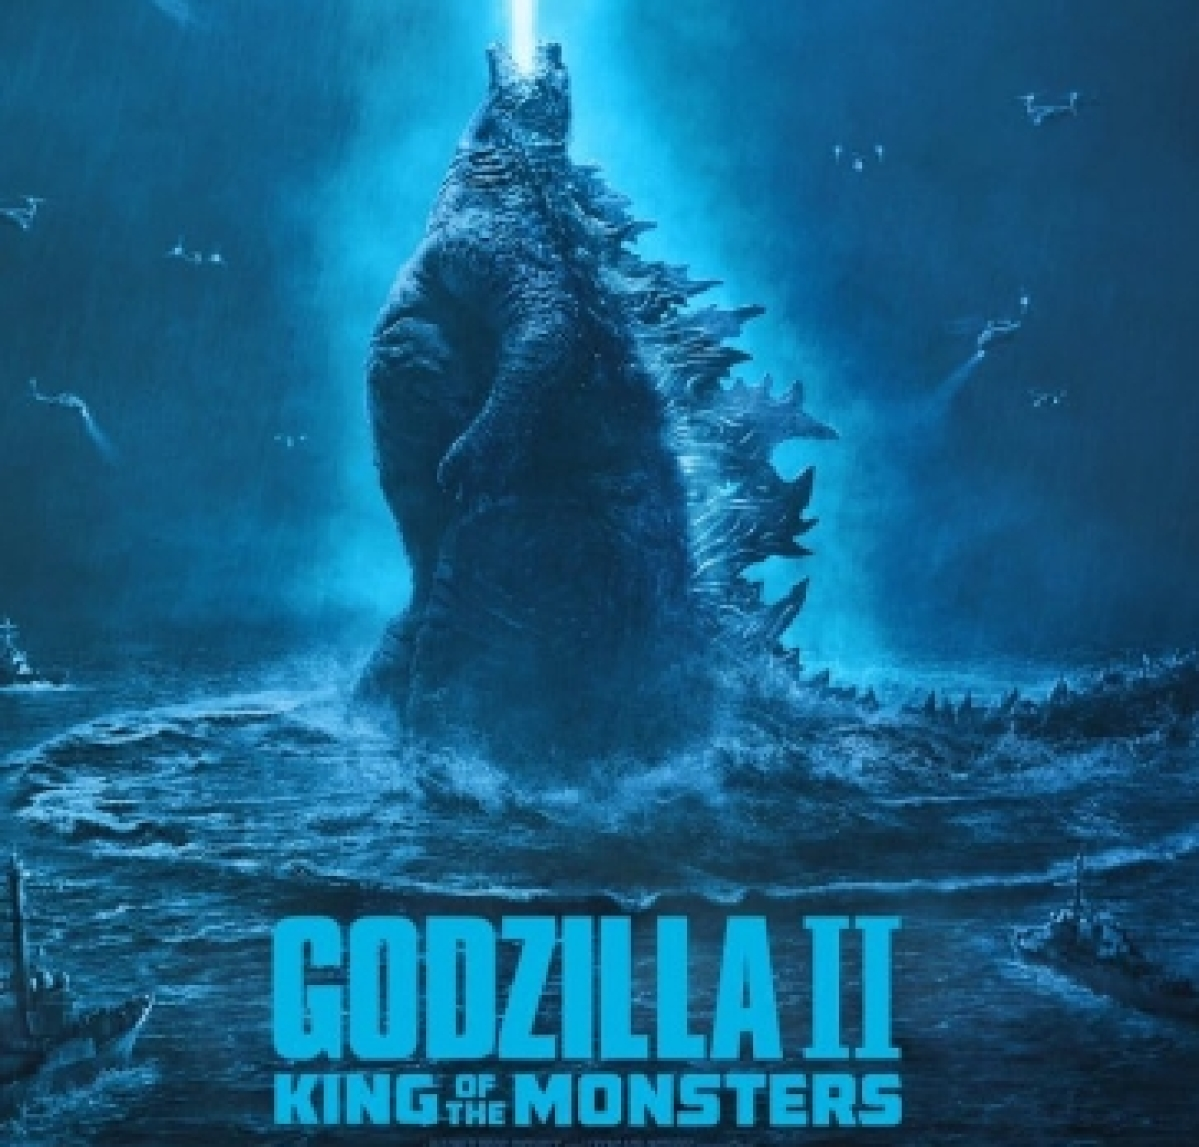 'Godzilla: King Of The Monsters' Movie Review: A monstrosity with family at the heart